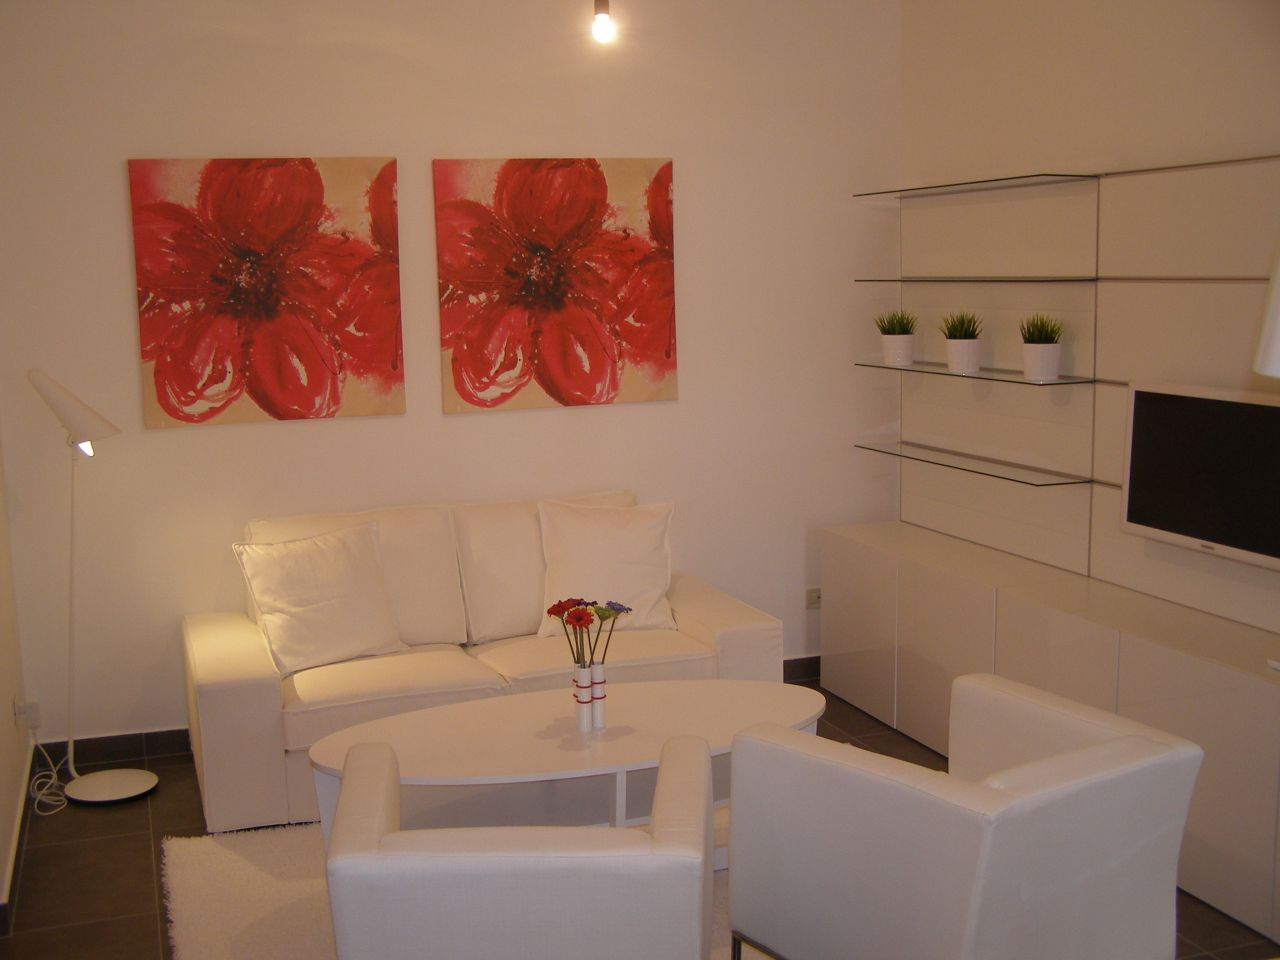 Rent Apartment in Albania, Tirana. One bedroom Apartment for Rent Tirana